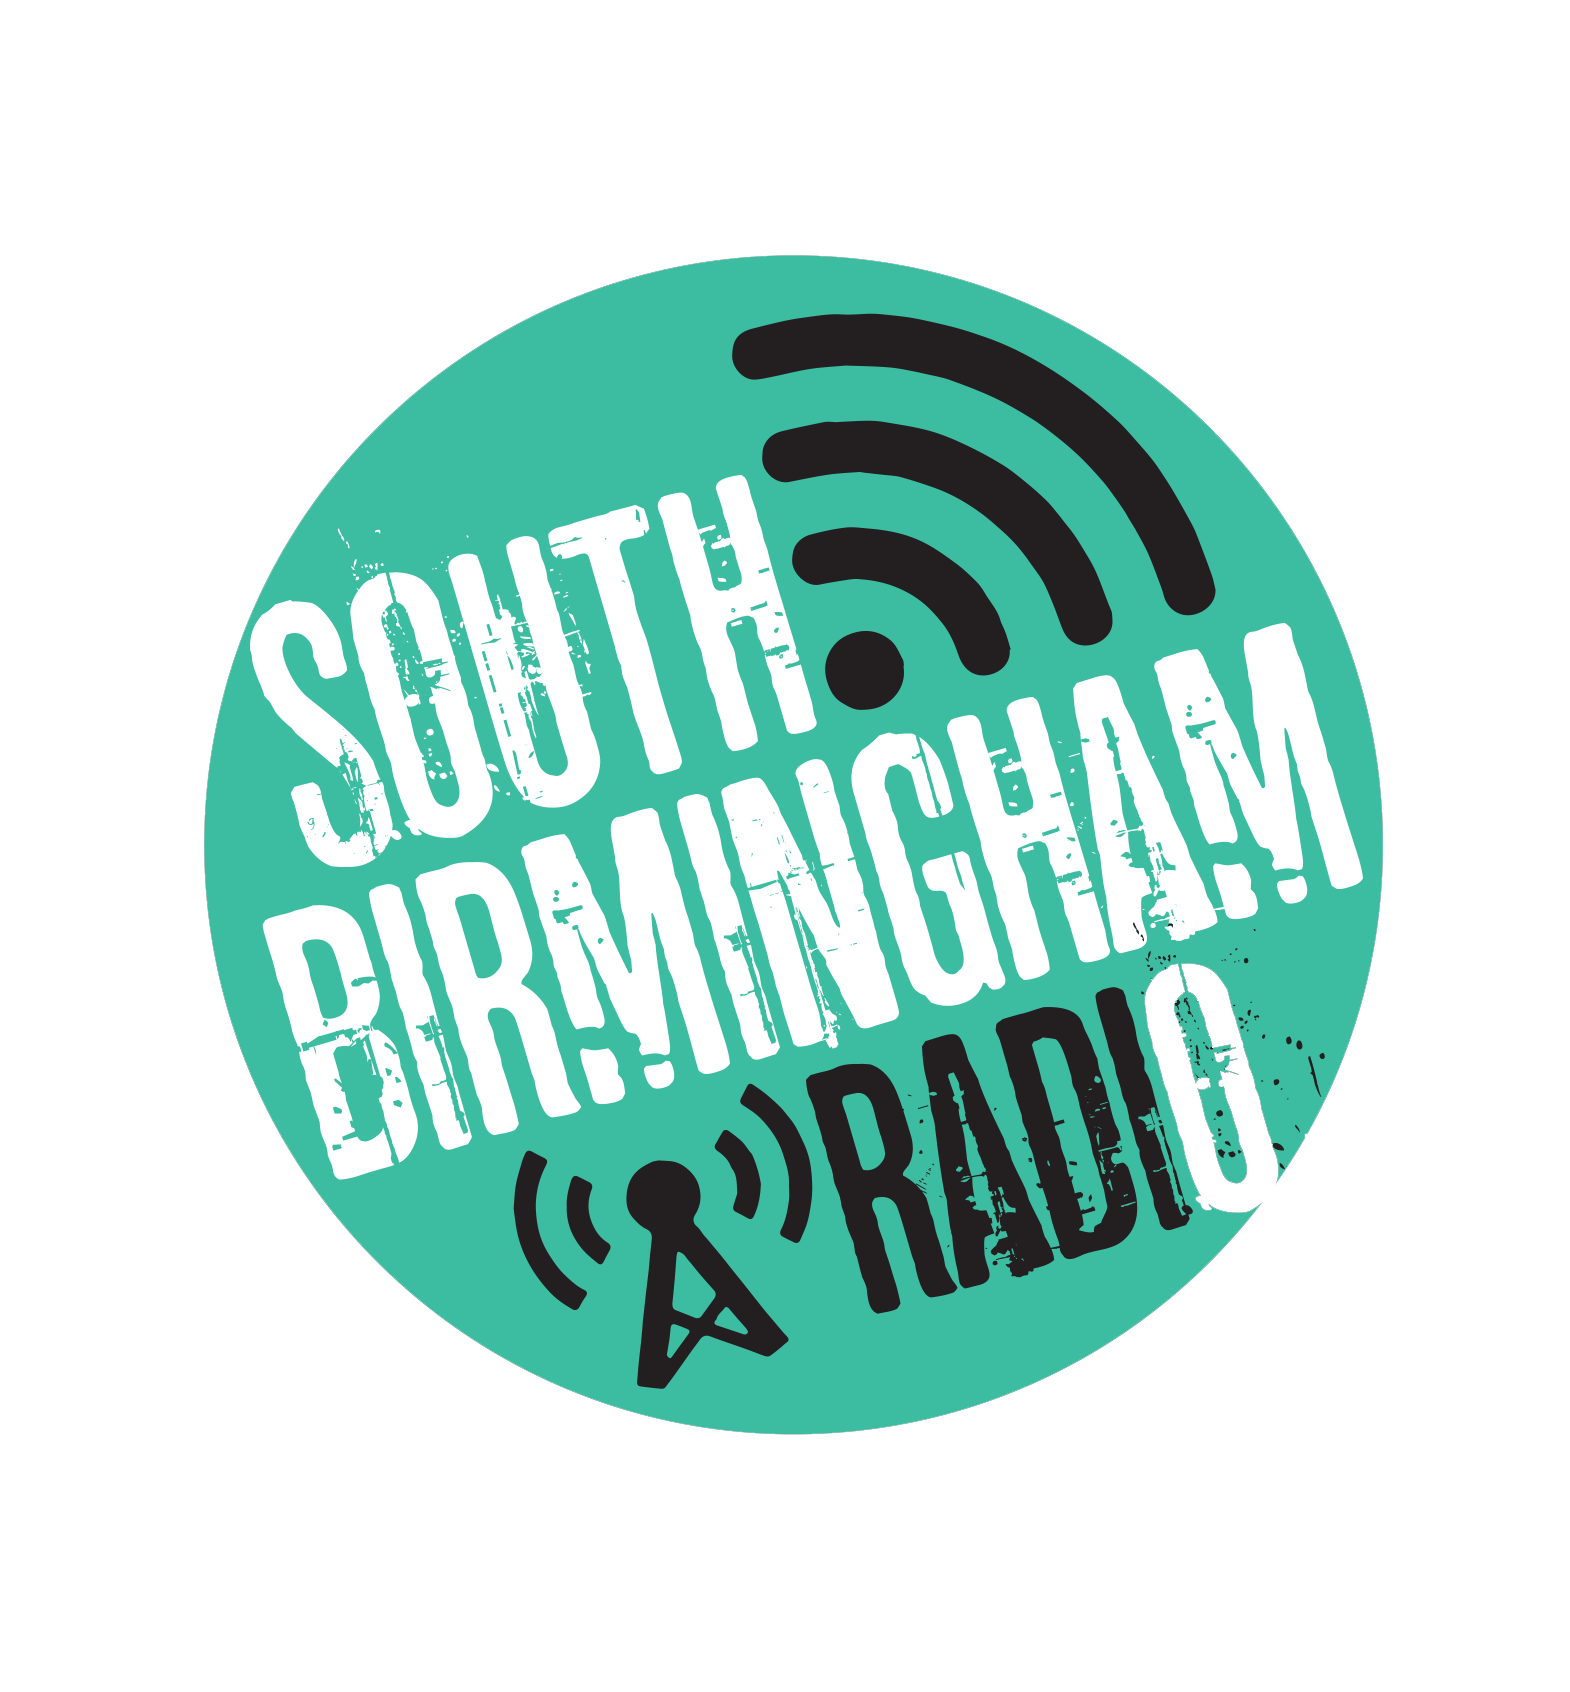 South Birmingham Community Radio - John McQuaid, from the radio station was at the July Market, handing out promotional literature and providing a much needed 'amplified voice for the market, King Norton Tennis Club, The Historical Society and St Paul's School activities.